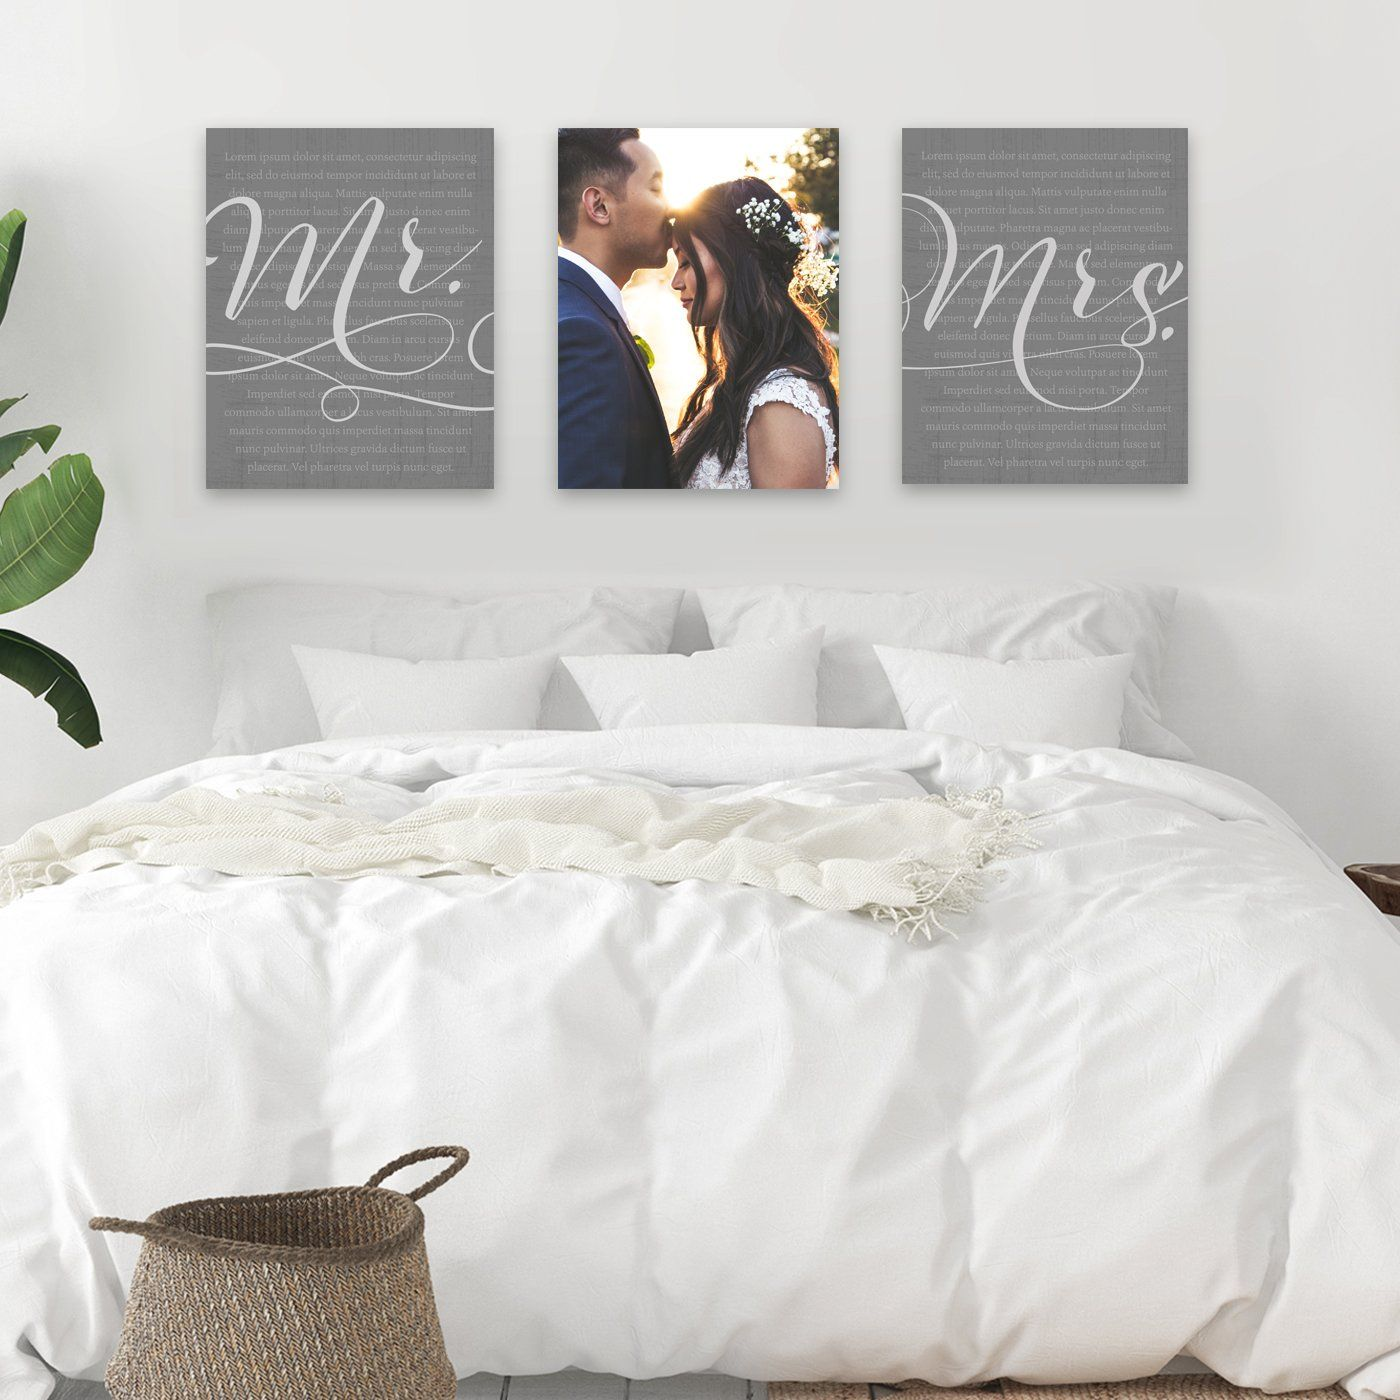 Custom His & Hers Wedding Canvas Vows - Wall Art Available At Pretty Perfect Studio